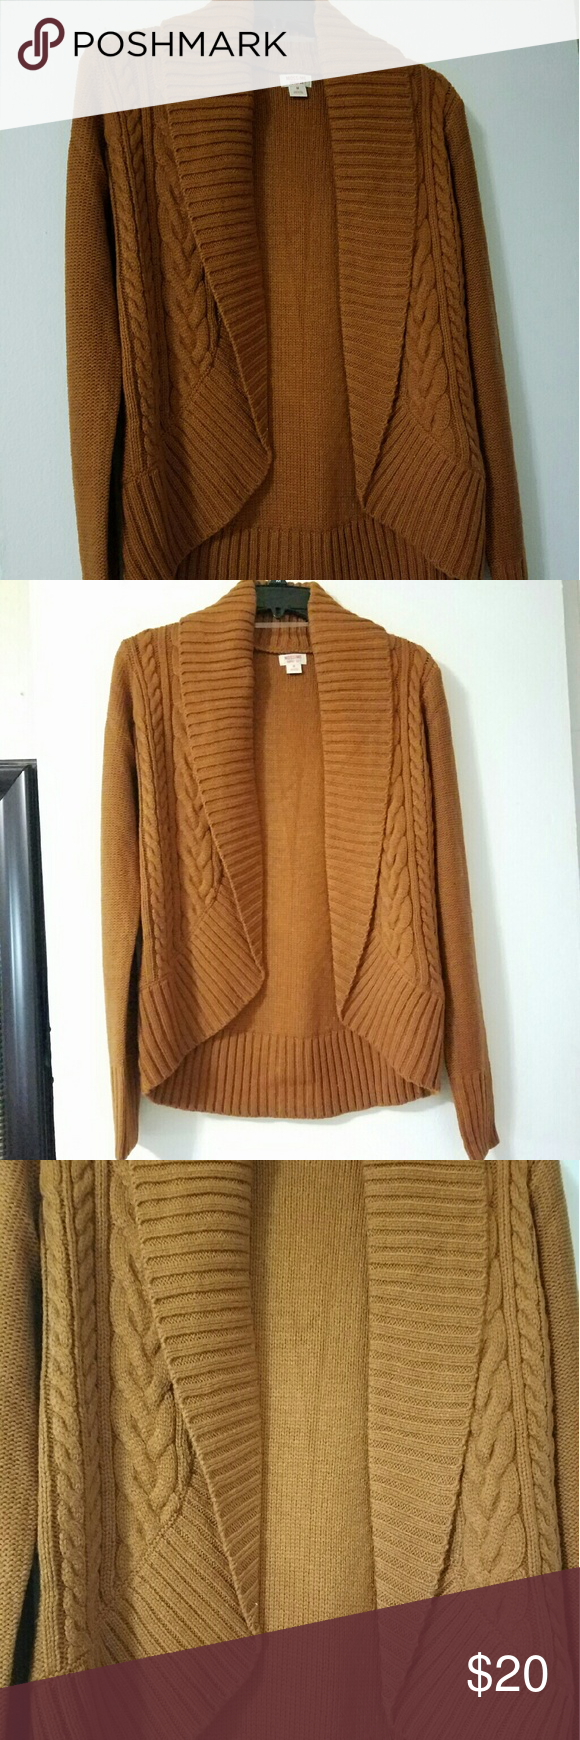 Bronze colored cardigan NWT | Sweater cardigan, Colors and Cardigans